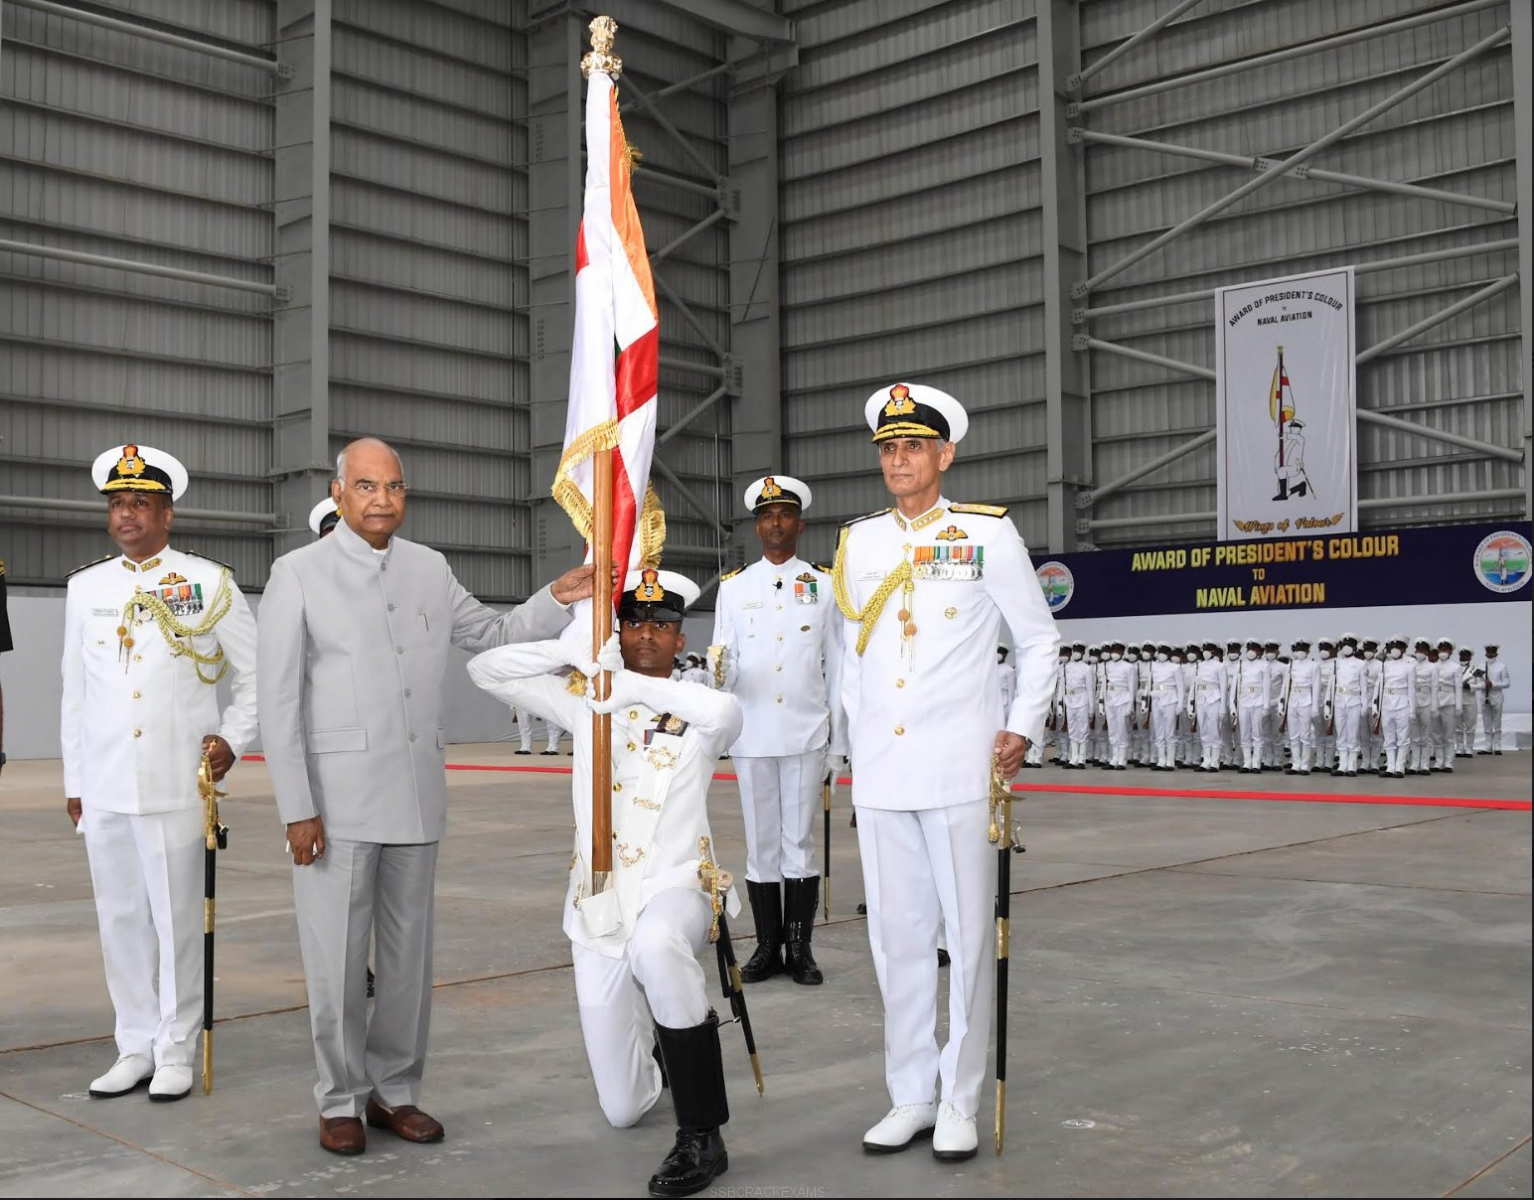 PRESIDENT'S COLOUR PRESENTED TO NAVAL AVIATION - 1